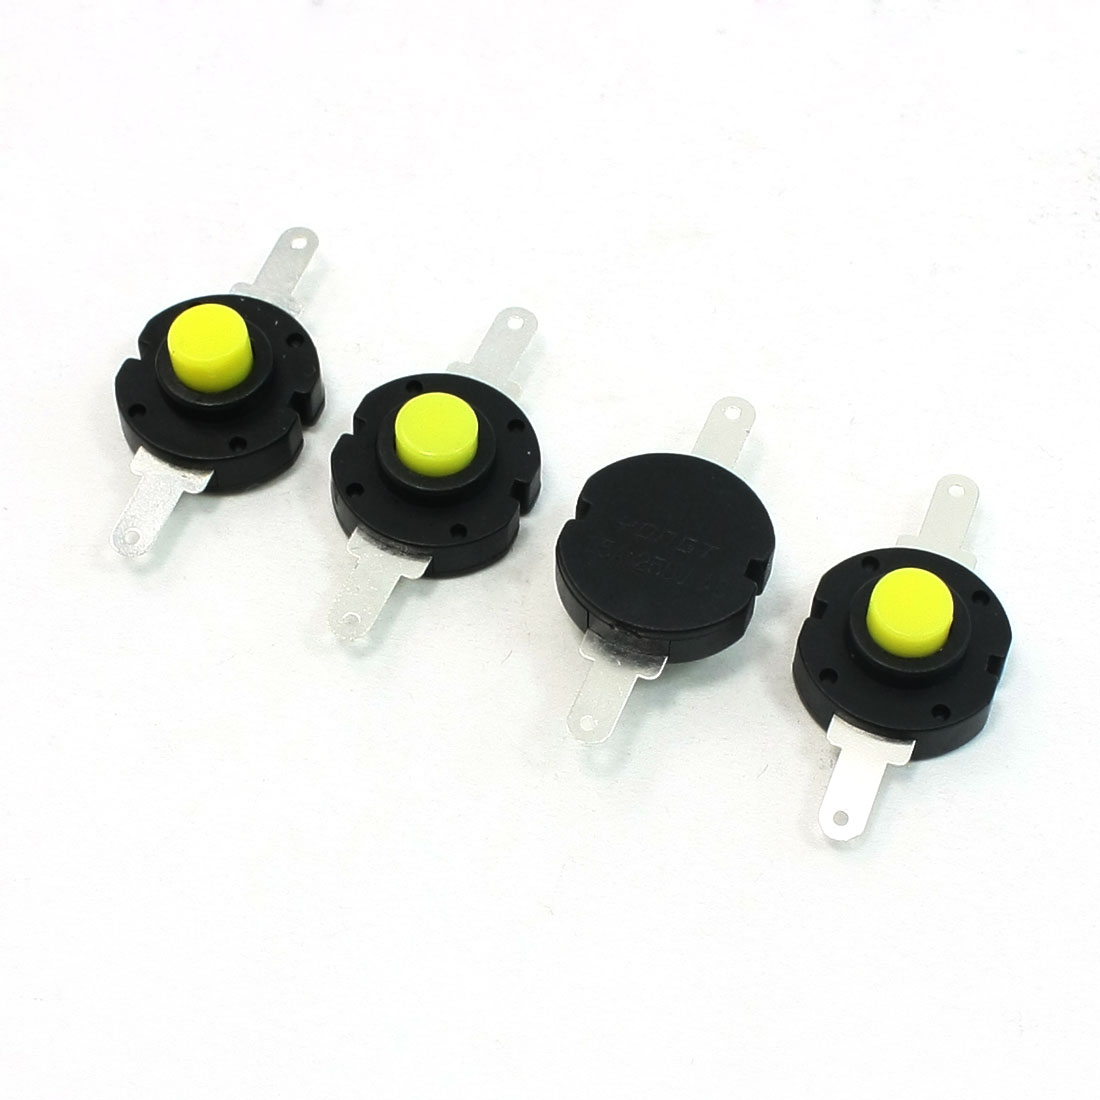 Flashlight Electric Torch 2TerminalsLatching Action Push Button Switch 4 Pcs